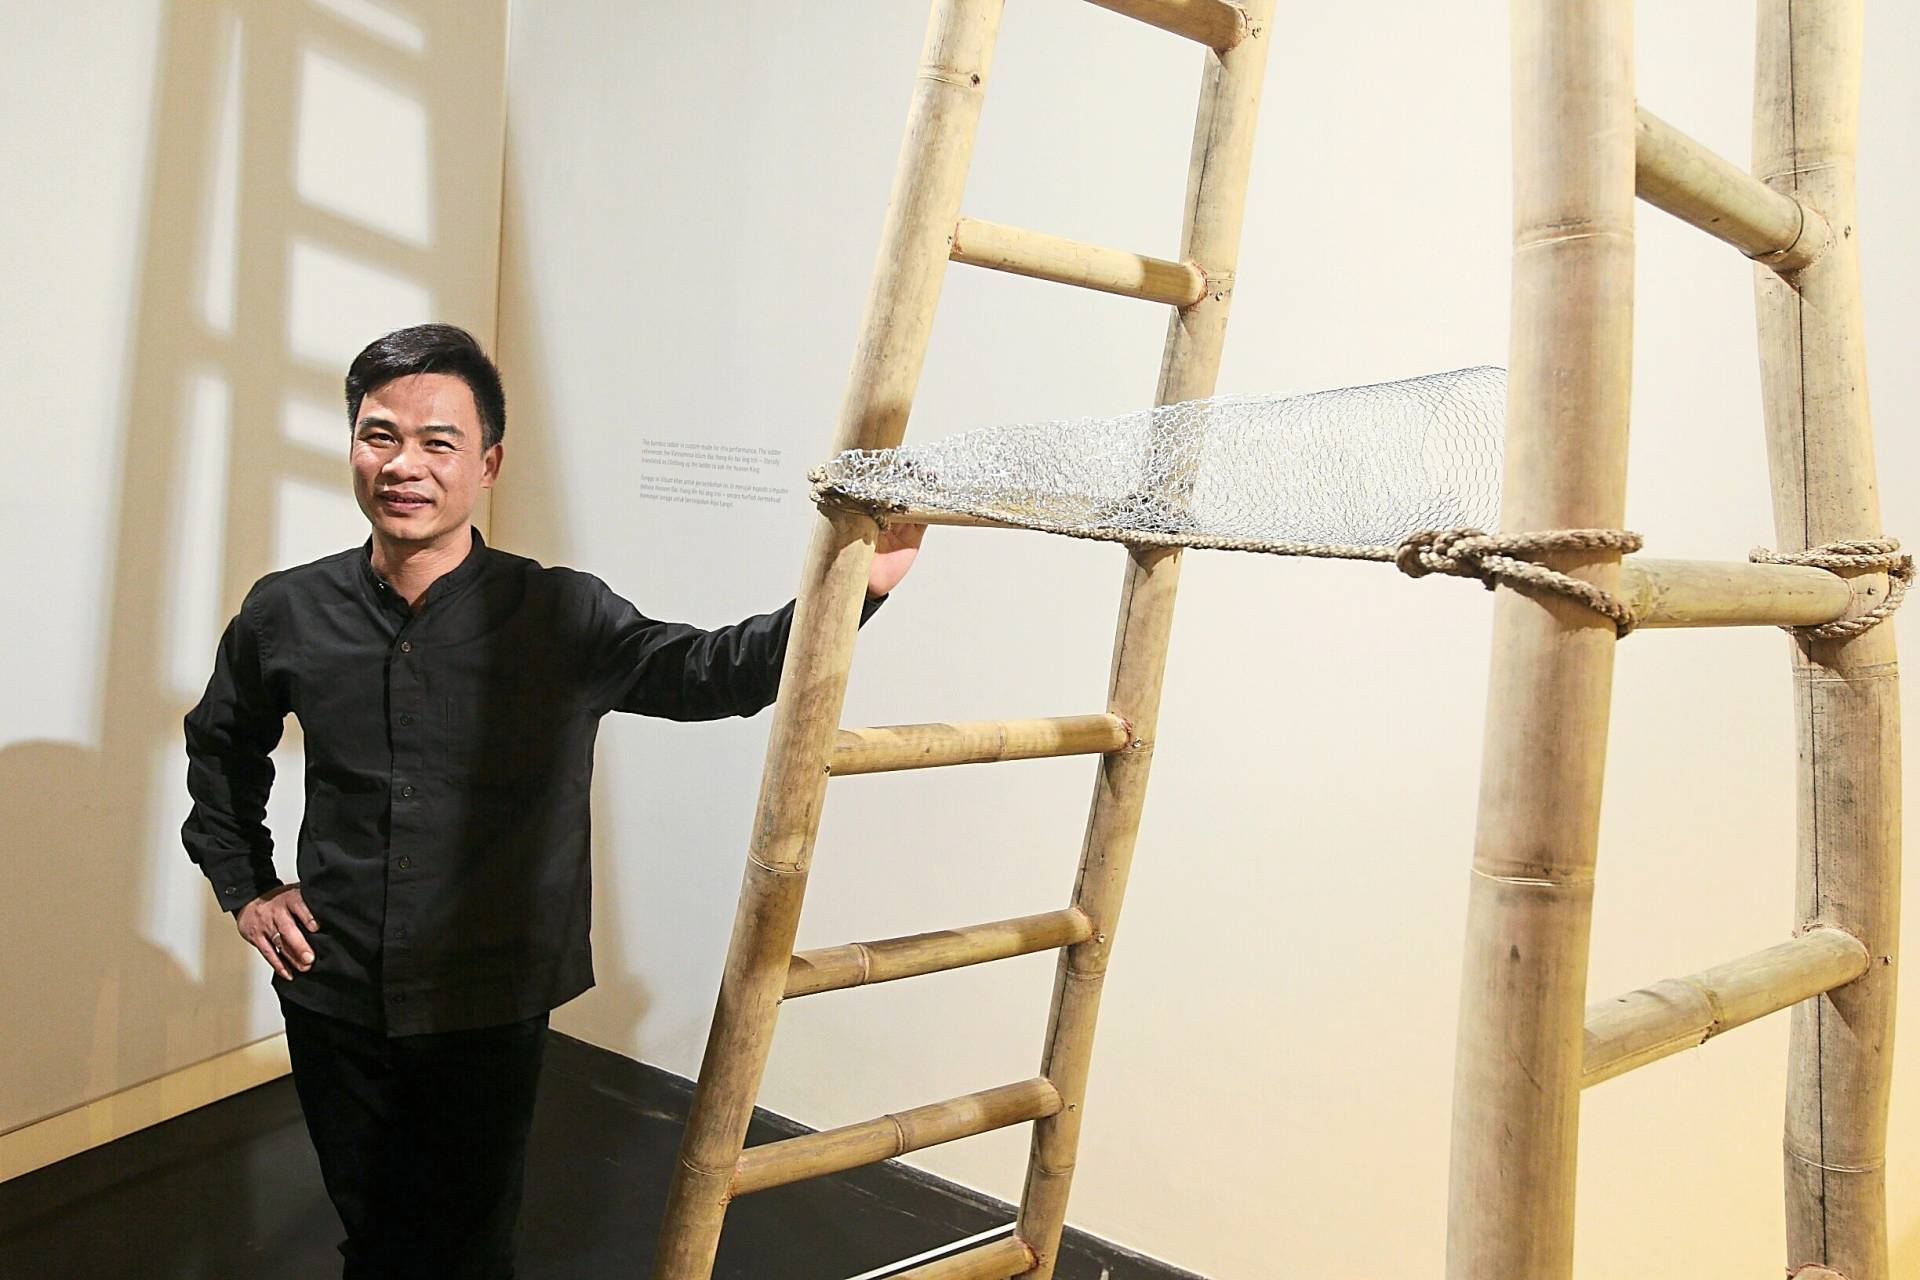 Hoang with his 'Muffled Puddle' performance piece at 'Domestic Bliss'. Photo: The Star/Azman Ghani